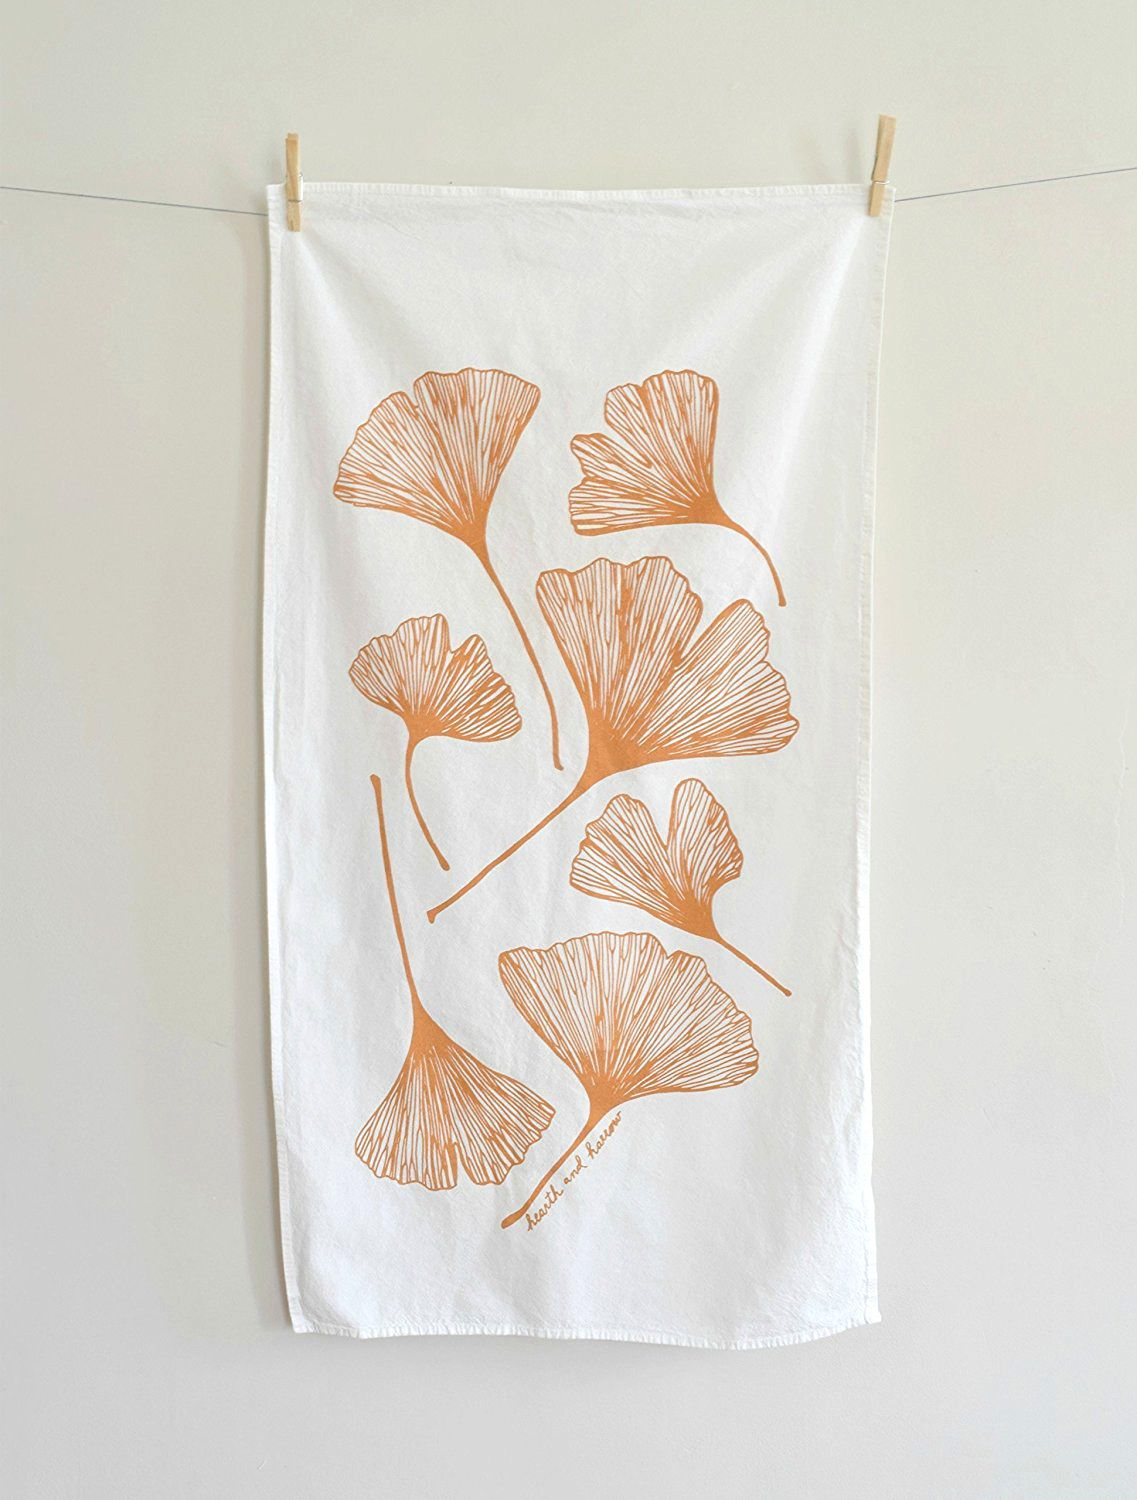 Ginko Leaf Flour Sack Tea Towel